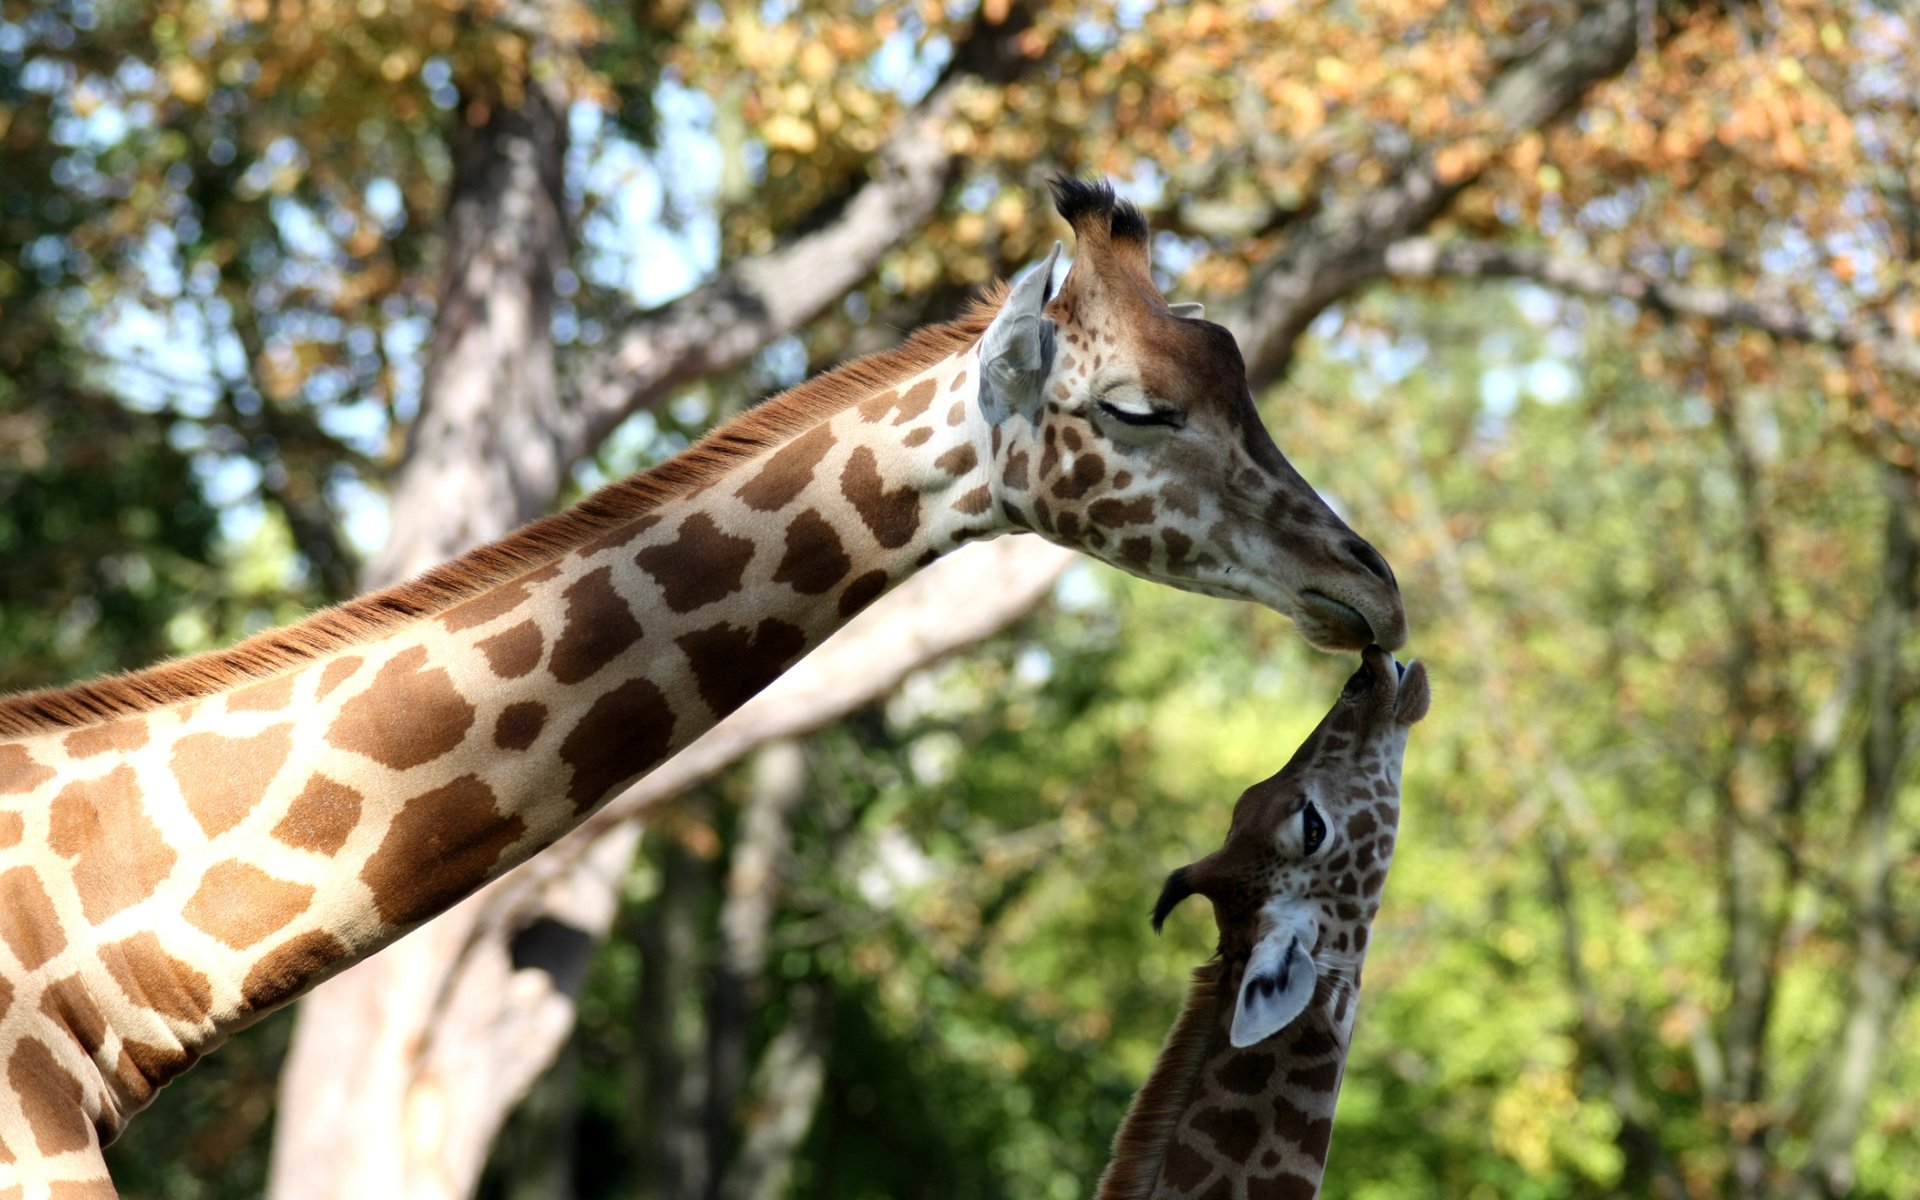 Giraffe Mother and Baby Heads Close Up Photography